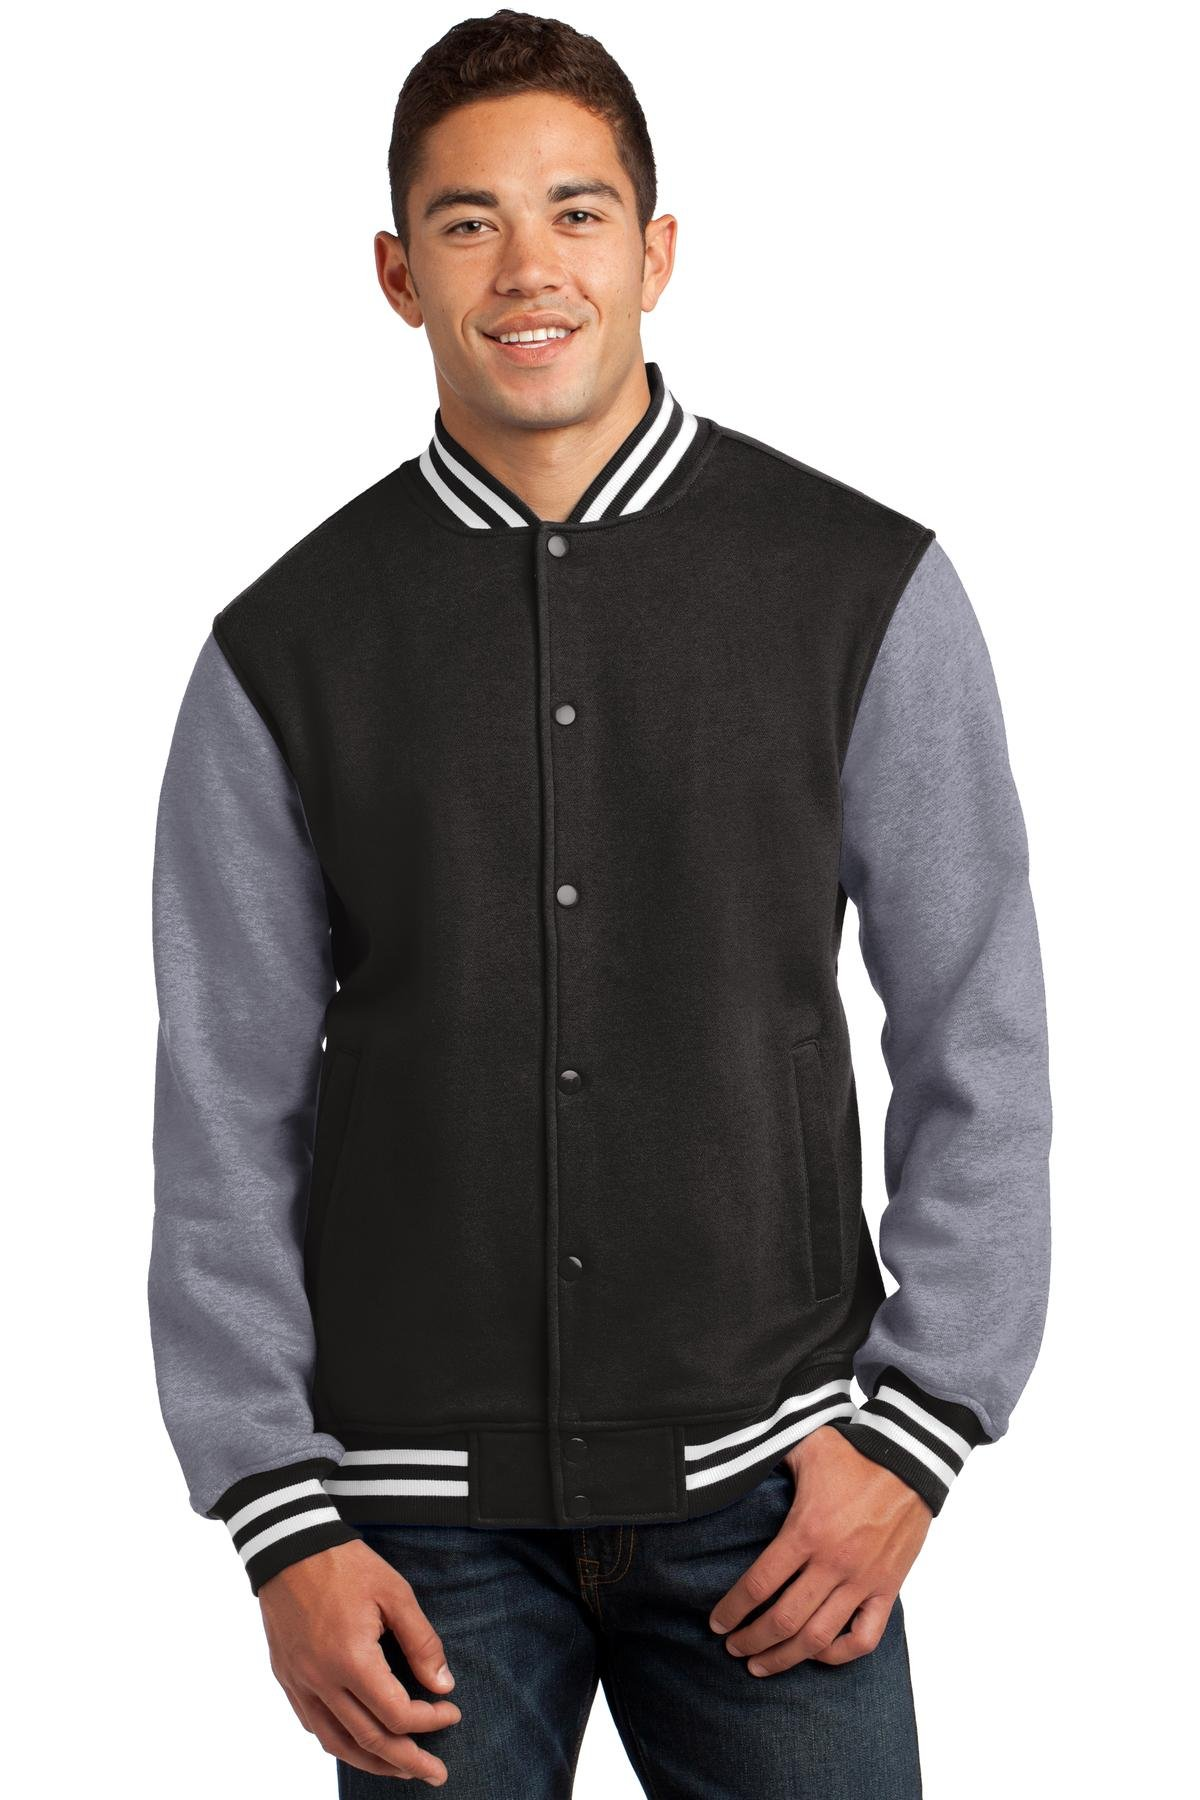 Sport-Tek Men's Fleece Letterman Jacket 3XL Black/ Vintage Heather